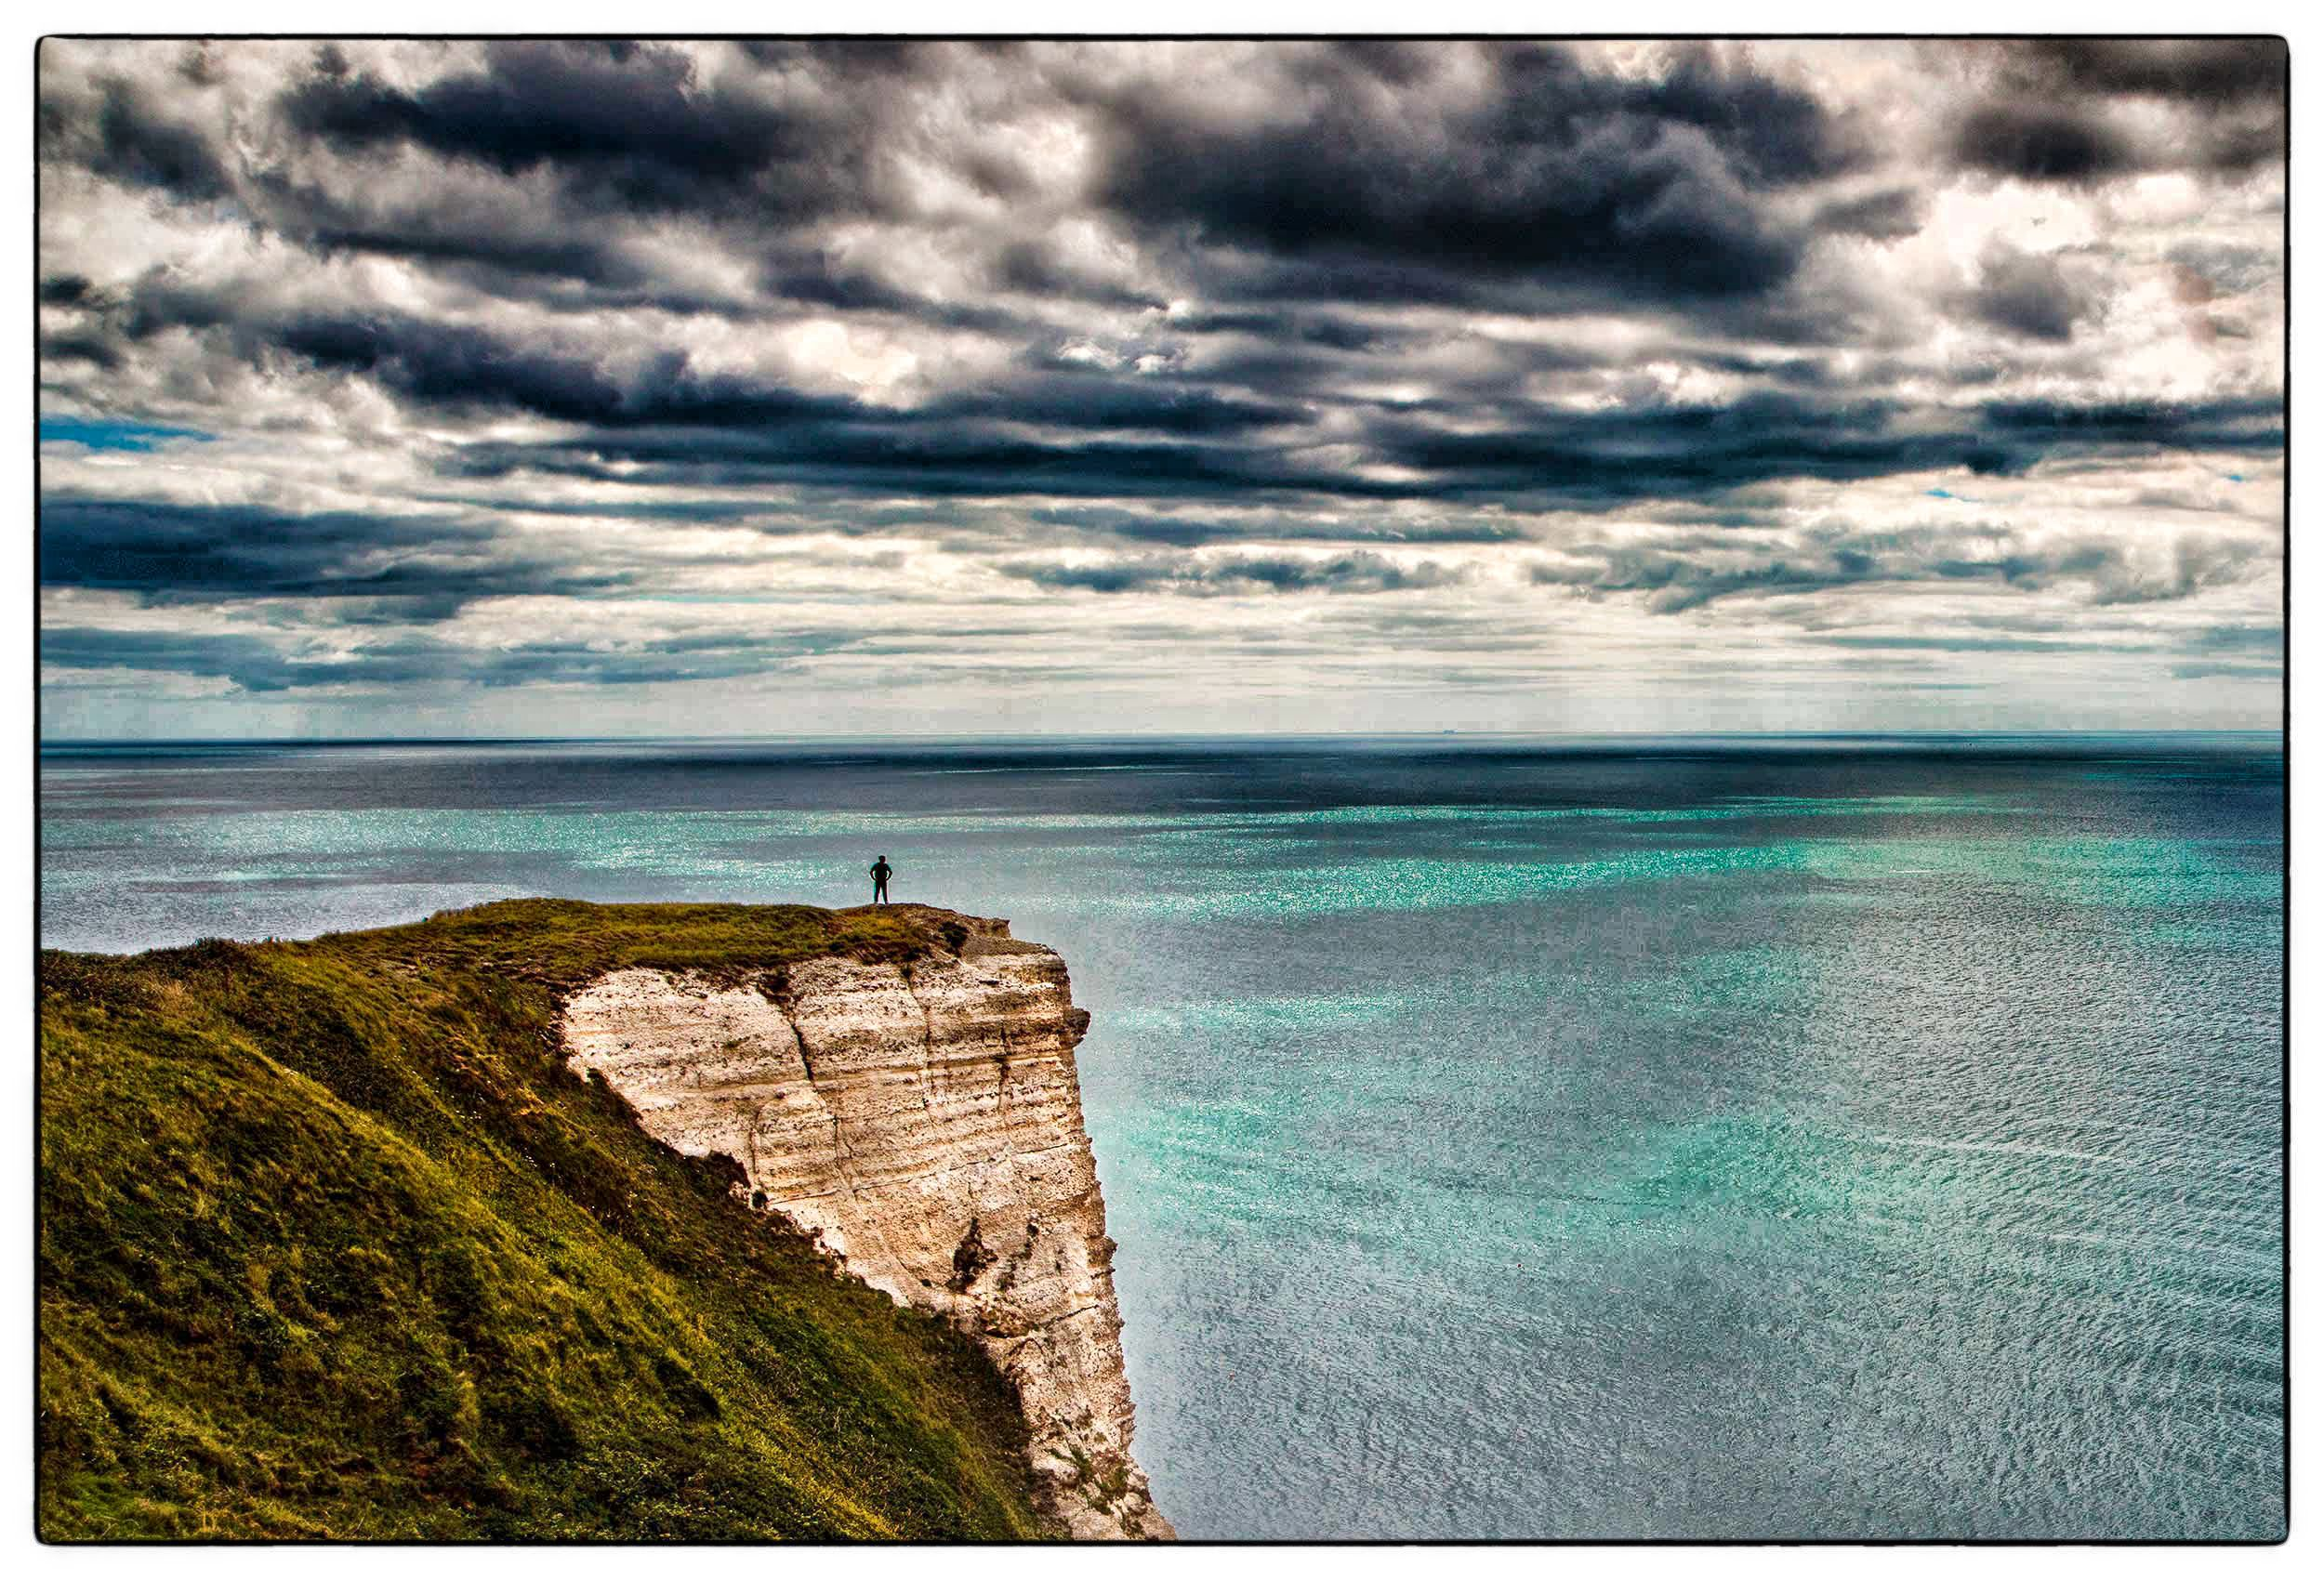 a-man-stands-on-a-cliff-near-lyme-regis-along-the-coastal-path-in-southwest-england